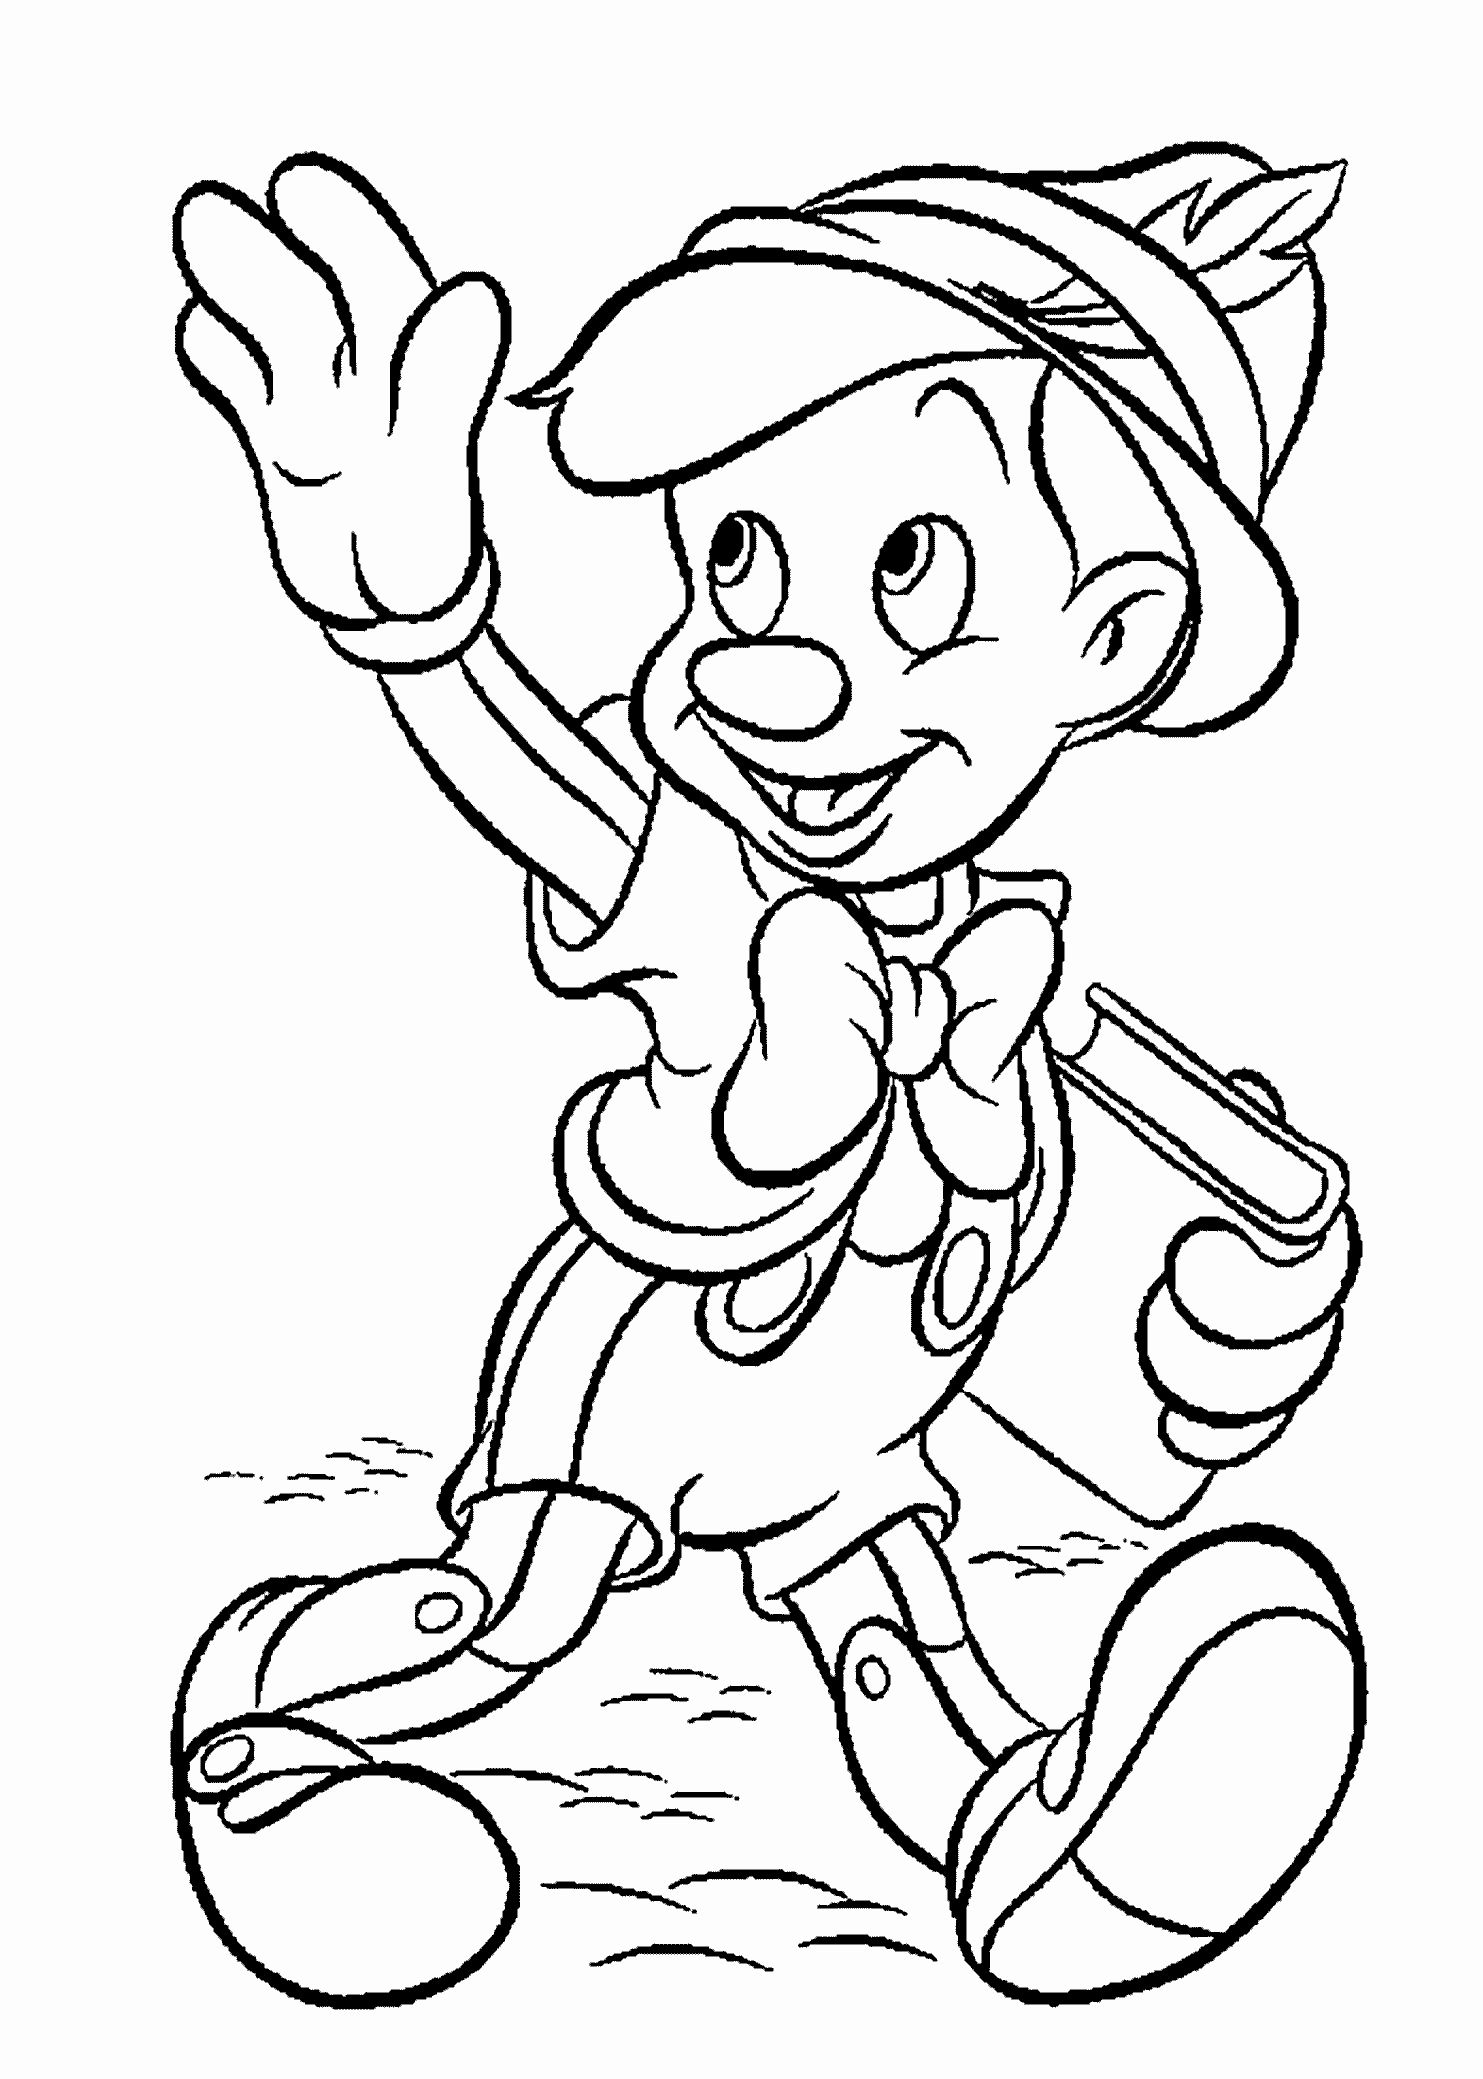 Disney Cartoon Coloring Pages For Kids Disney Coloring Pages Cartoon Coloring Pages Disney Colors